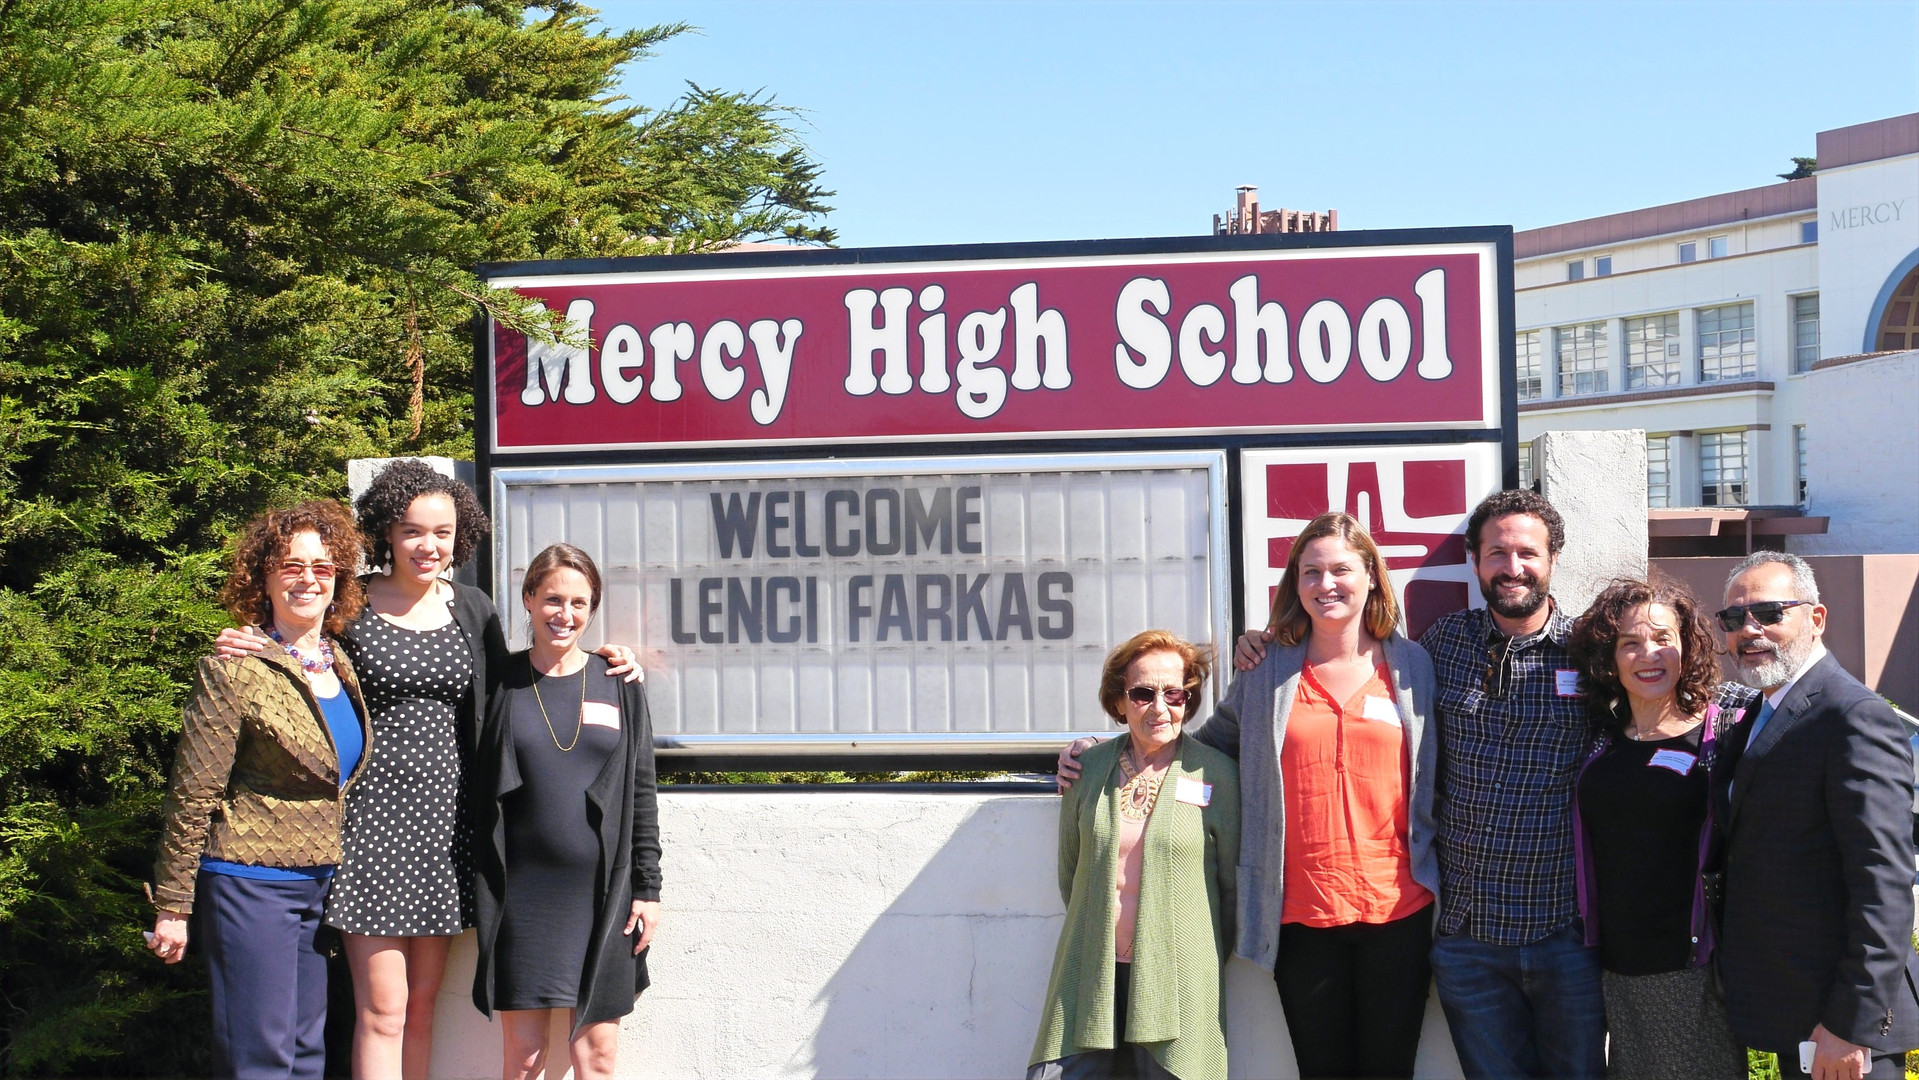 Courage & Spirit 2016 Honoree Lenci Farkas stands with her family in front of Mercy SF High School.